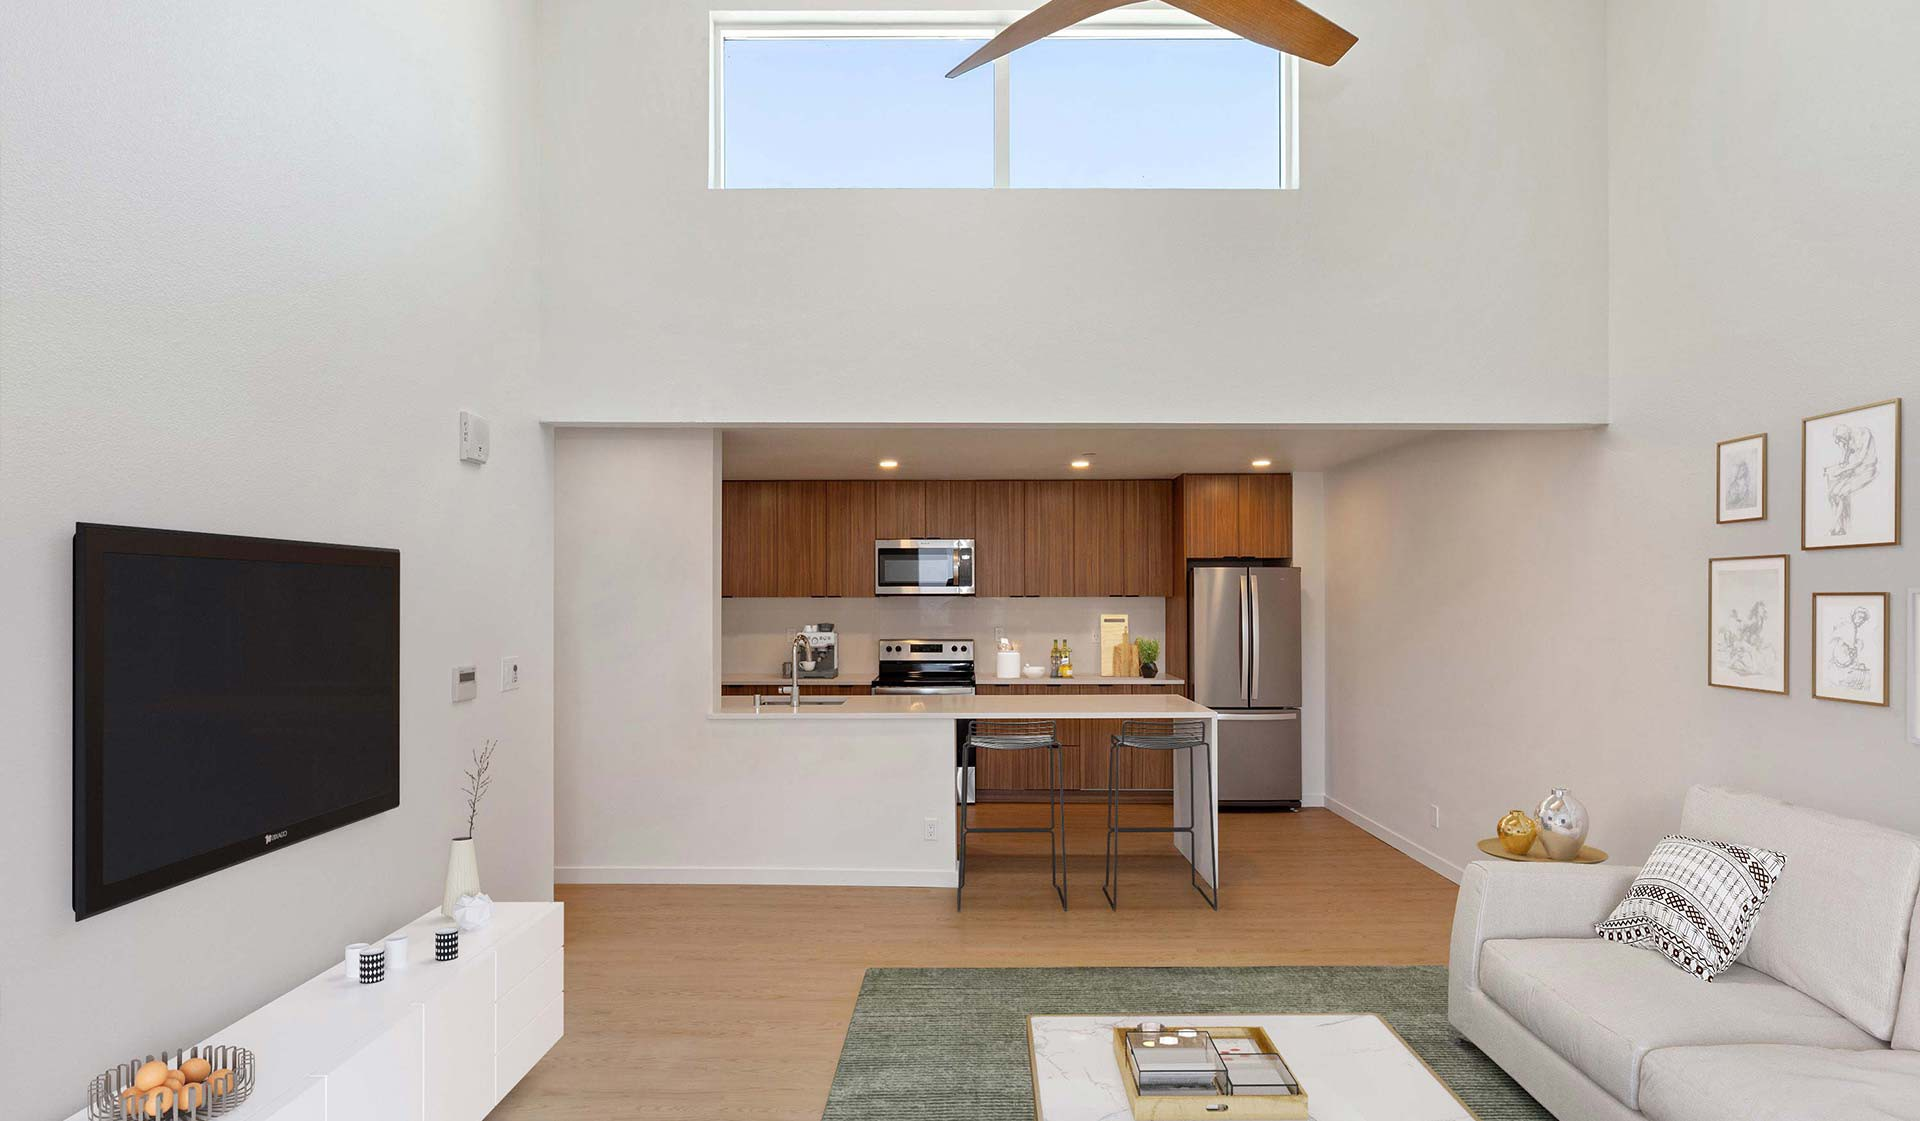 707 Leahy Apartments for rent